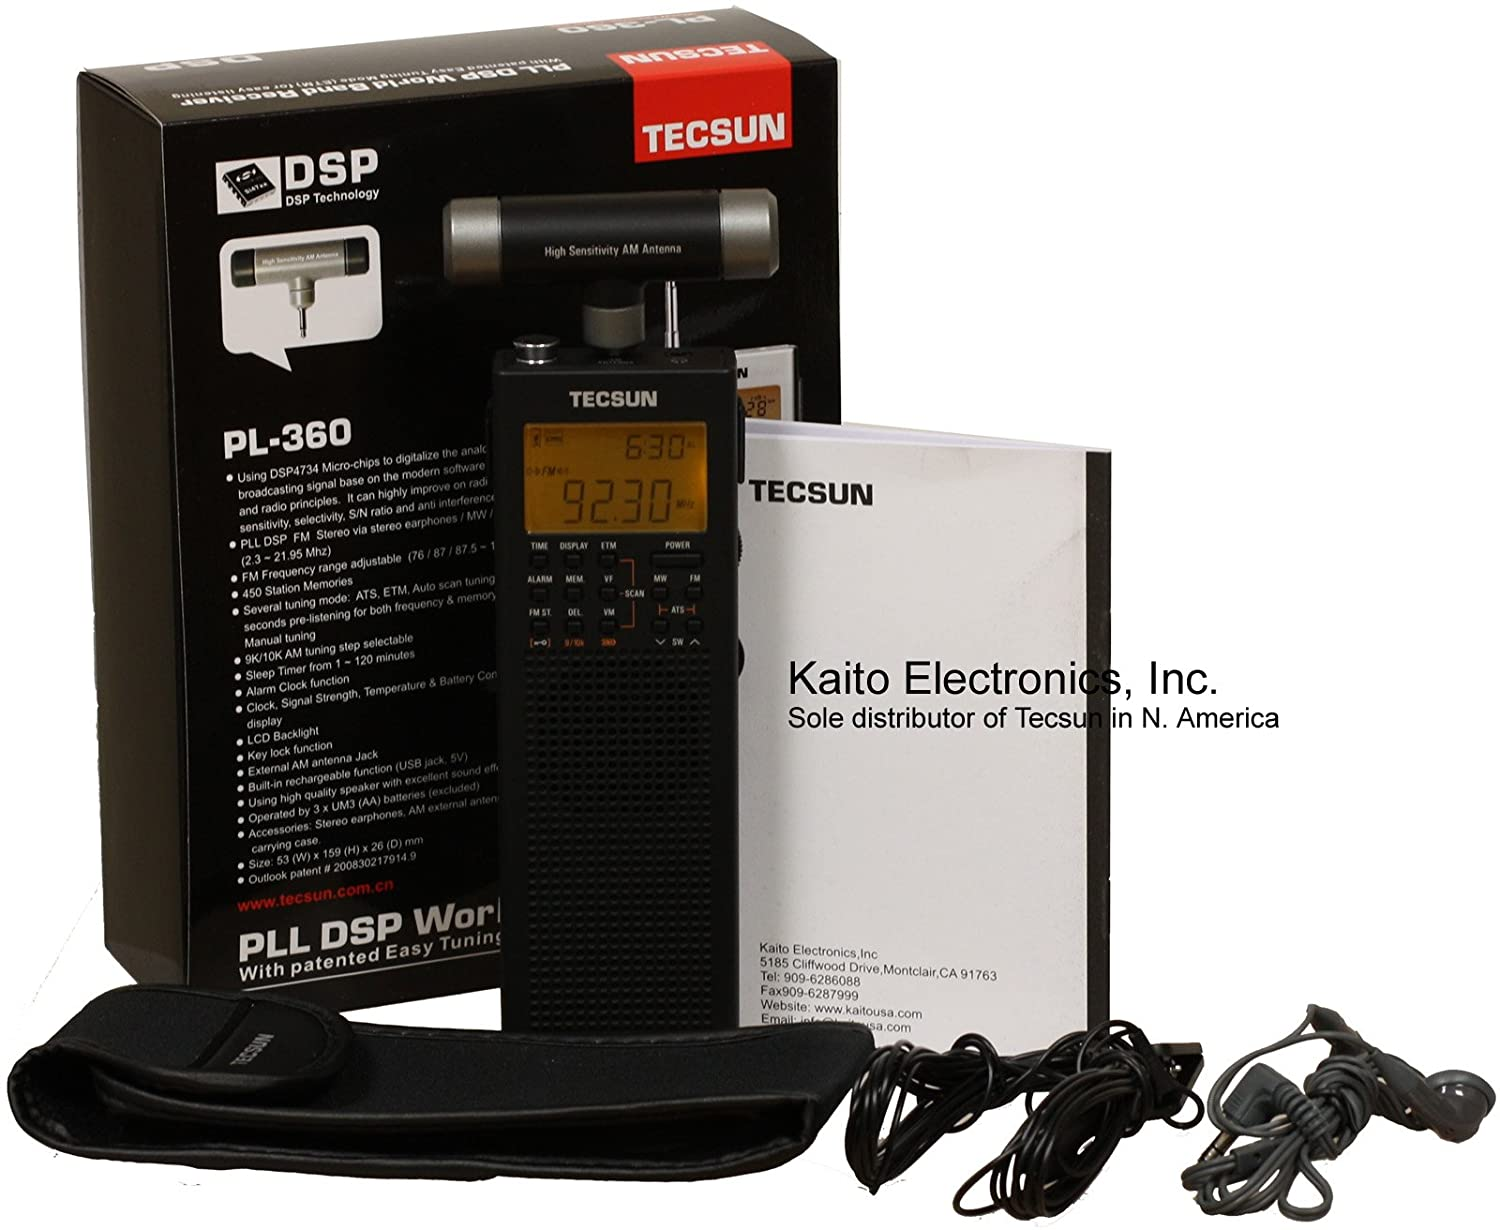 Black Tecsun PL-360 Digital PLL Portable AM//FM Shortwave Radio with DSP